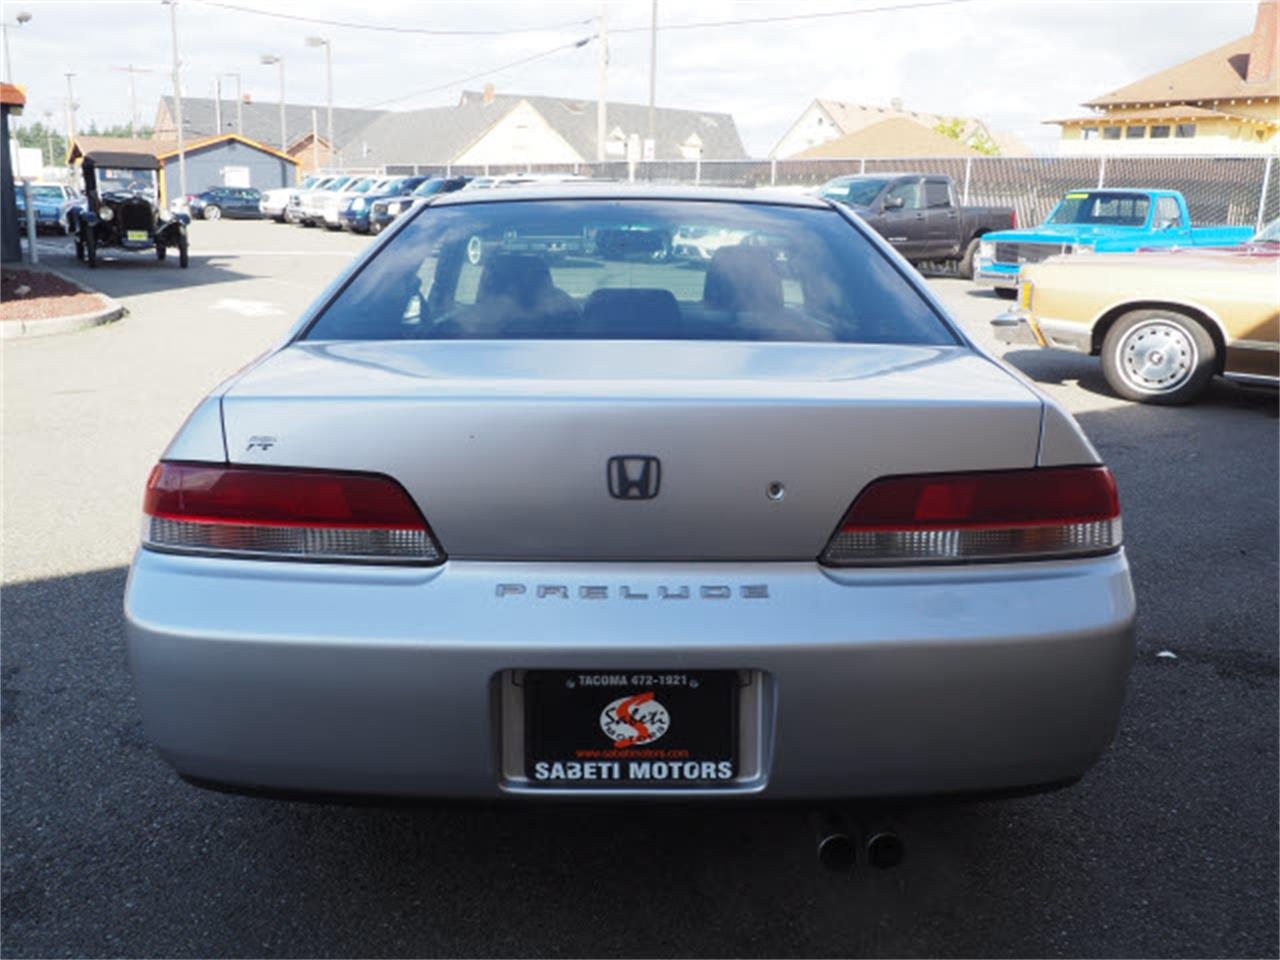 Large Picture of '01 Honda Prelude located in Washington - $4,990.00 - R37J